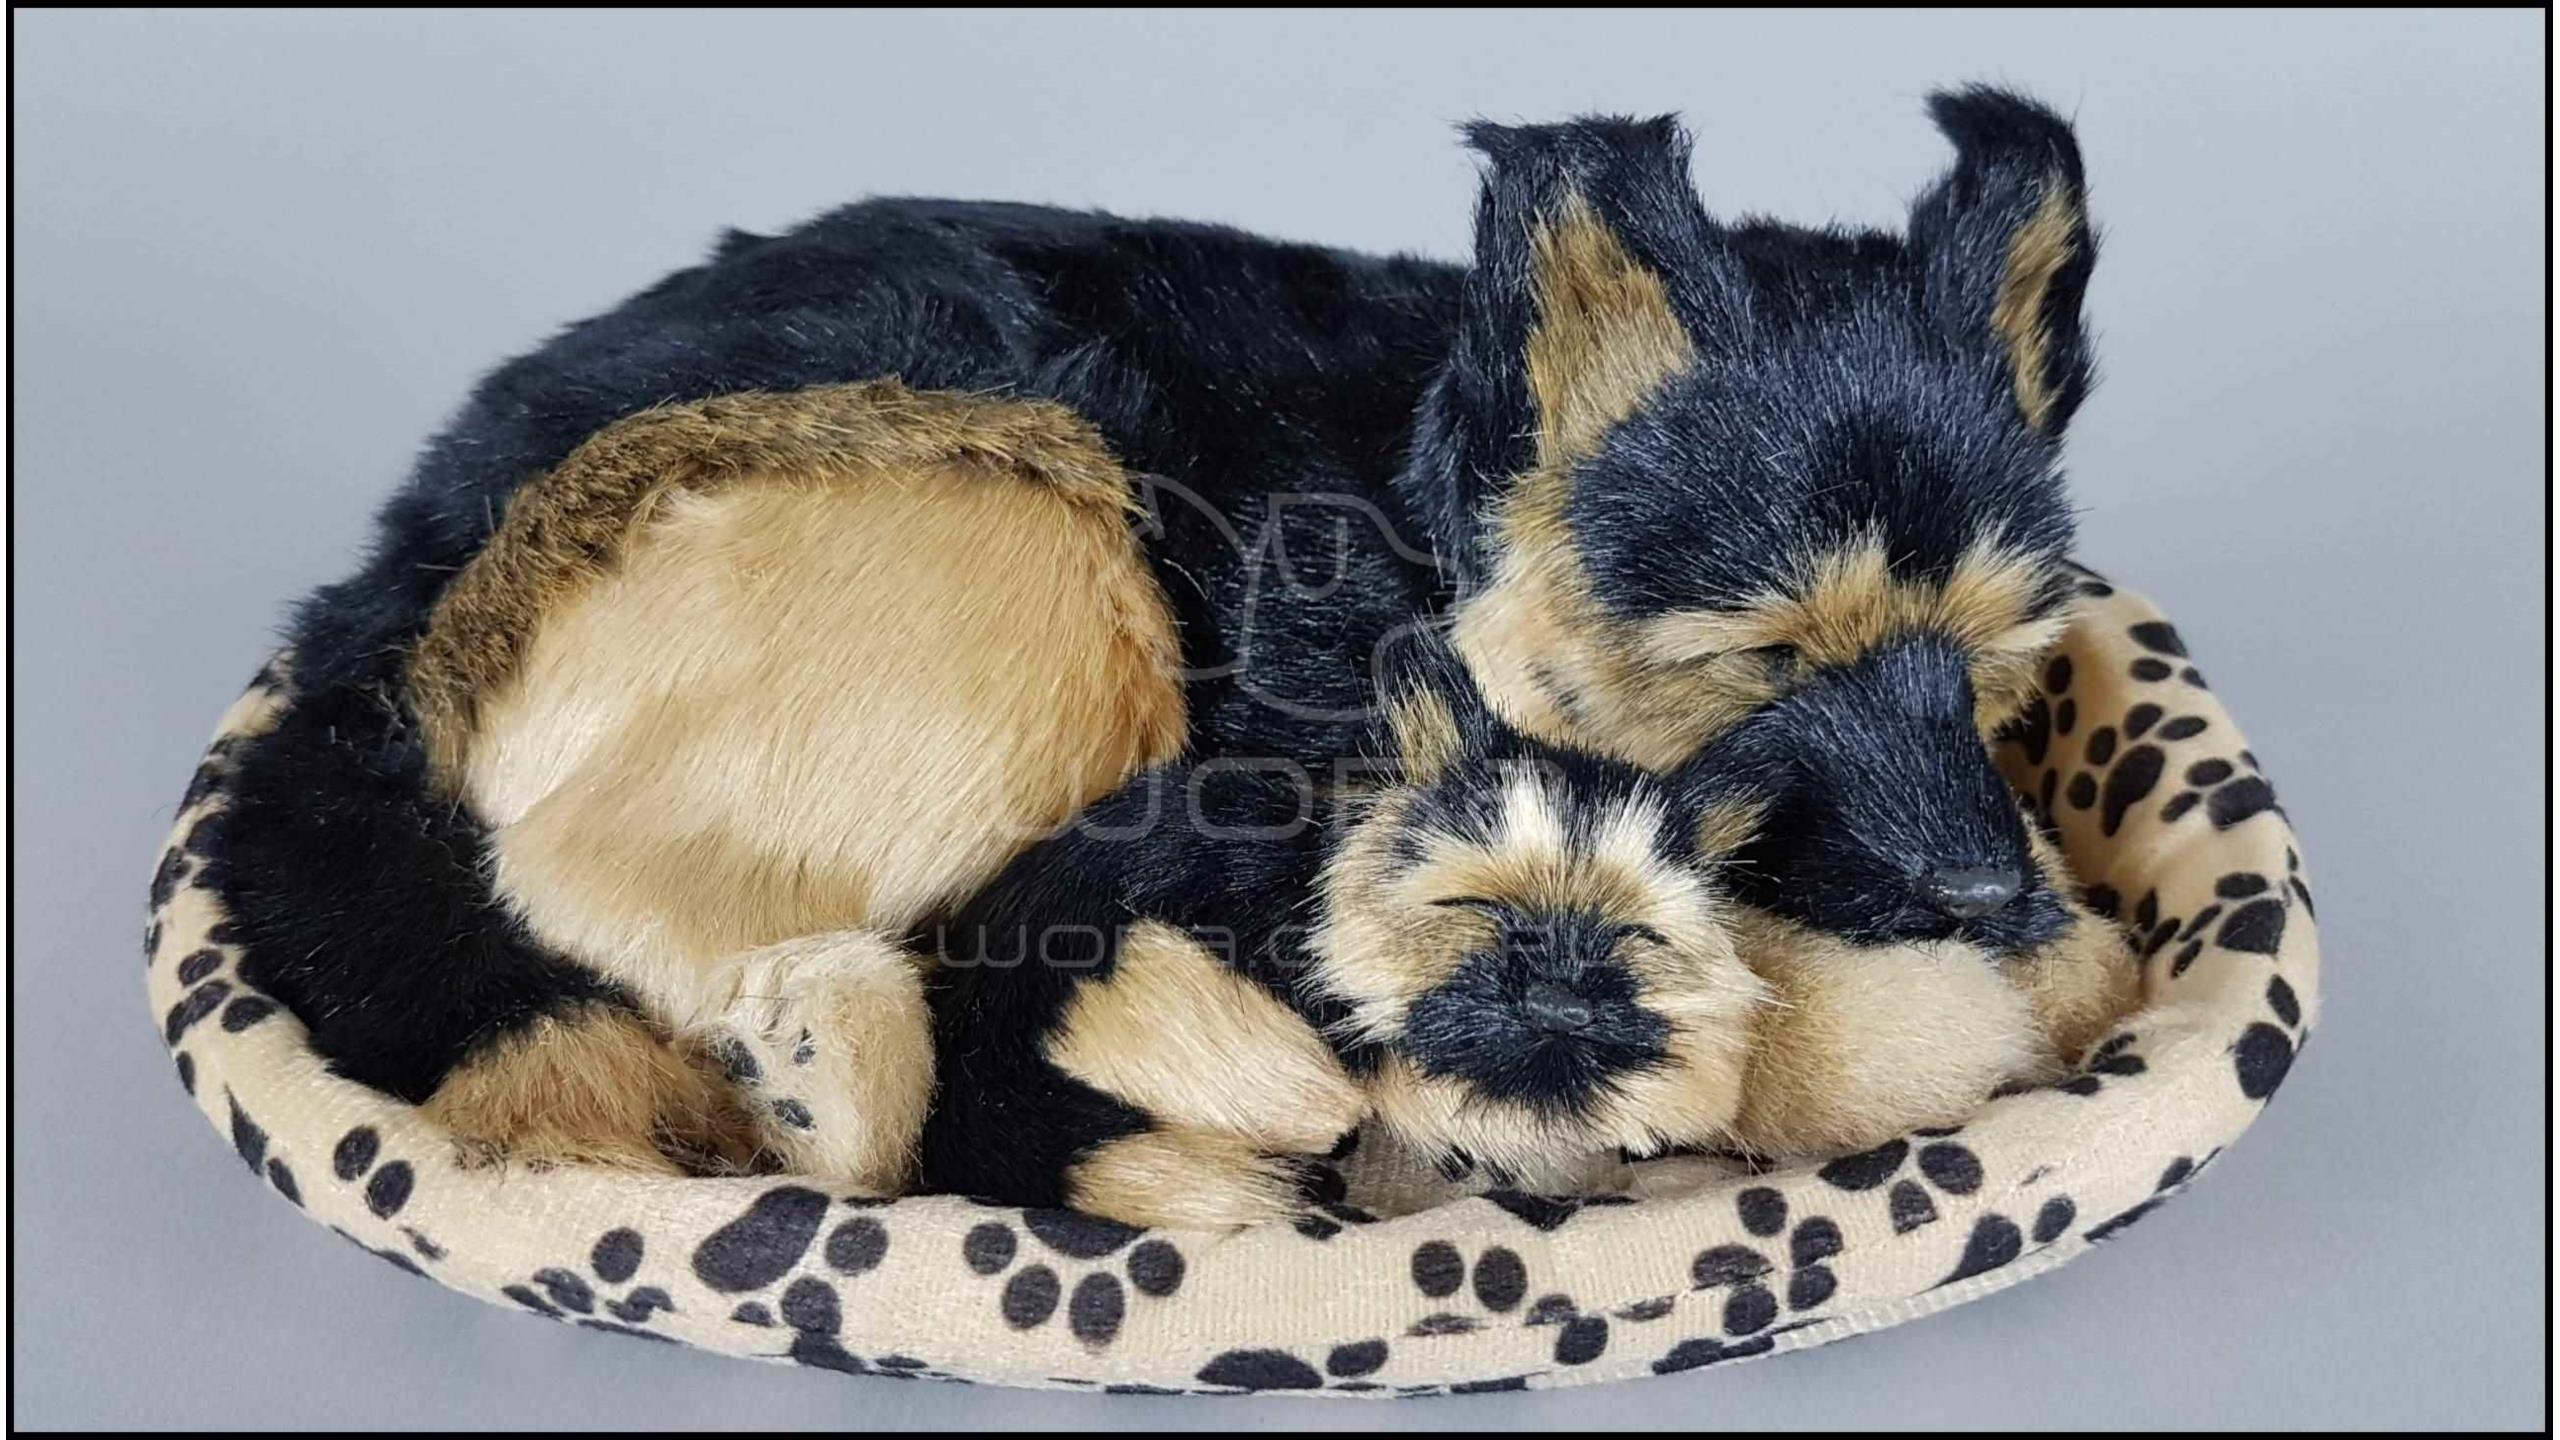 Large dog in a cot, with a puppy - Germain shepherd